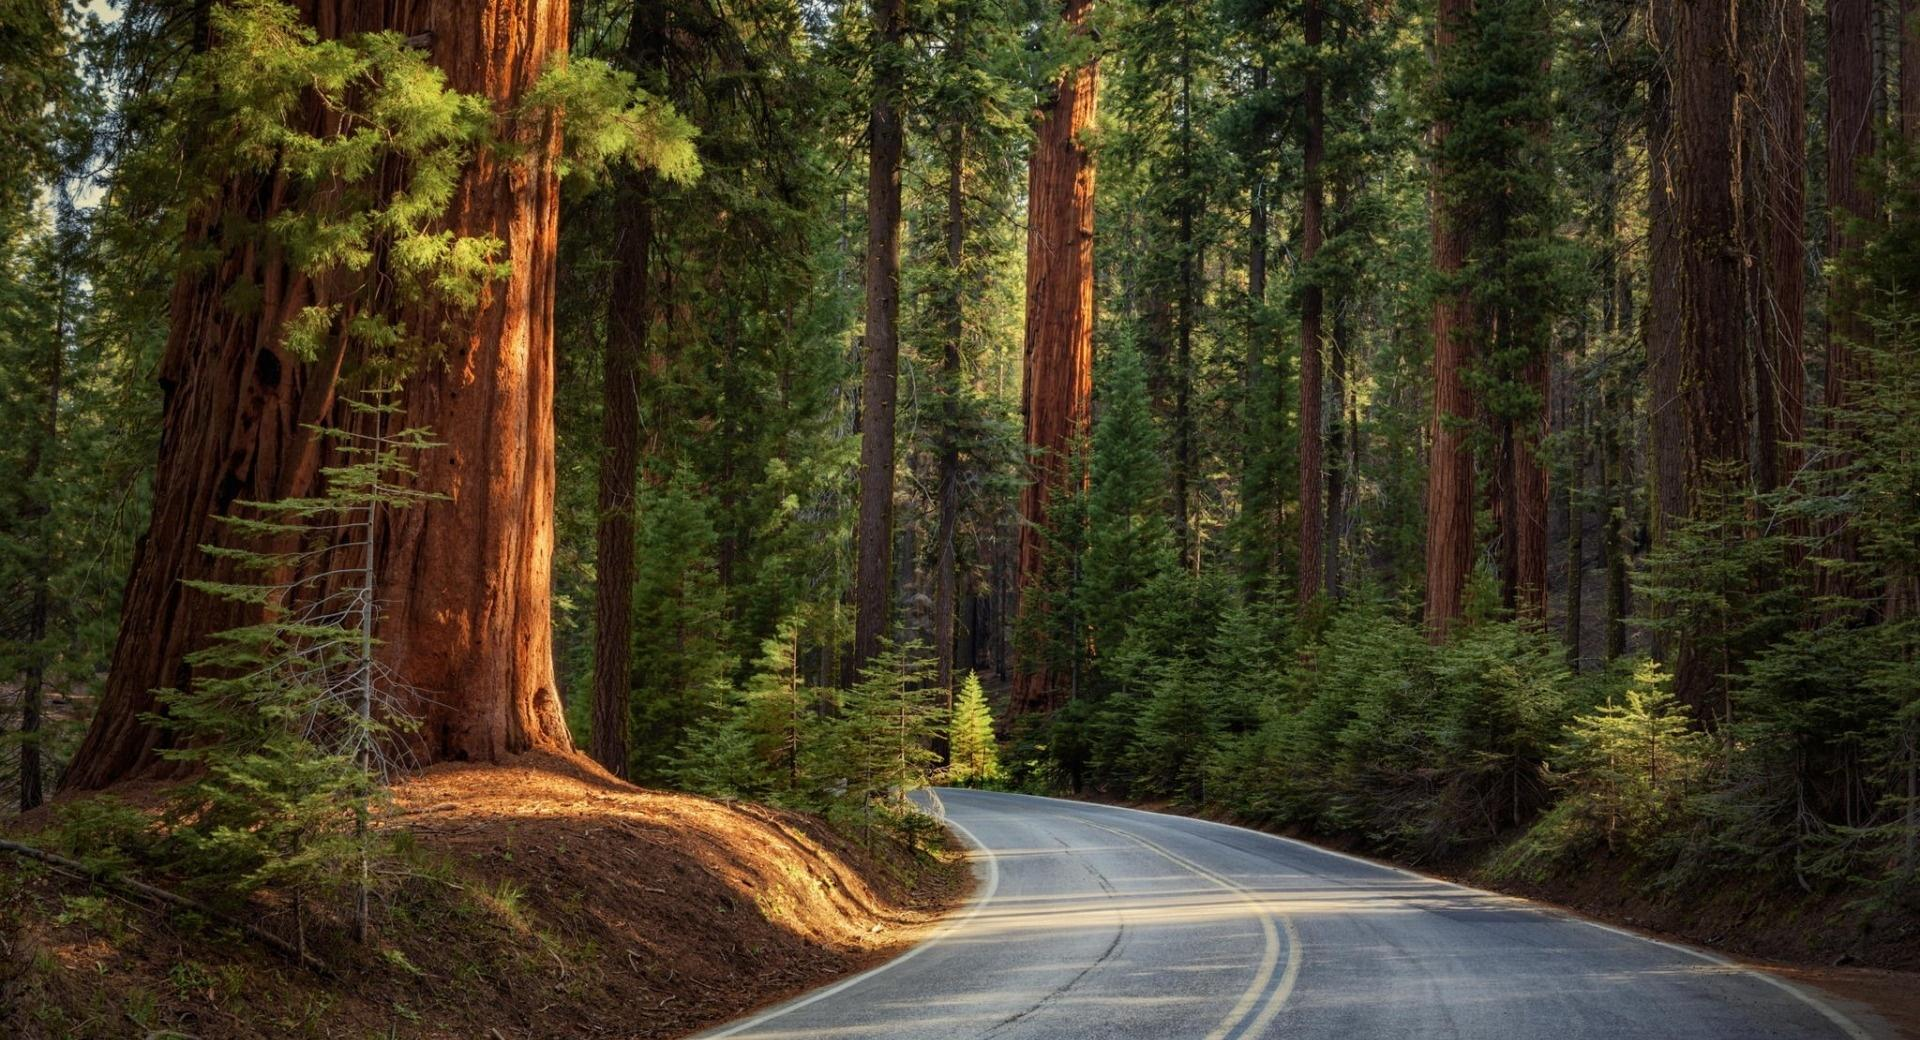 Road In Pine Forest wallpapers HD quality